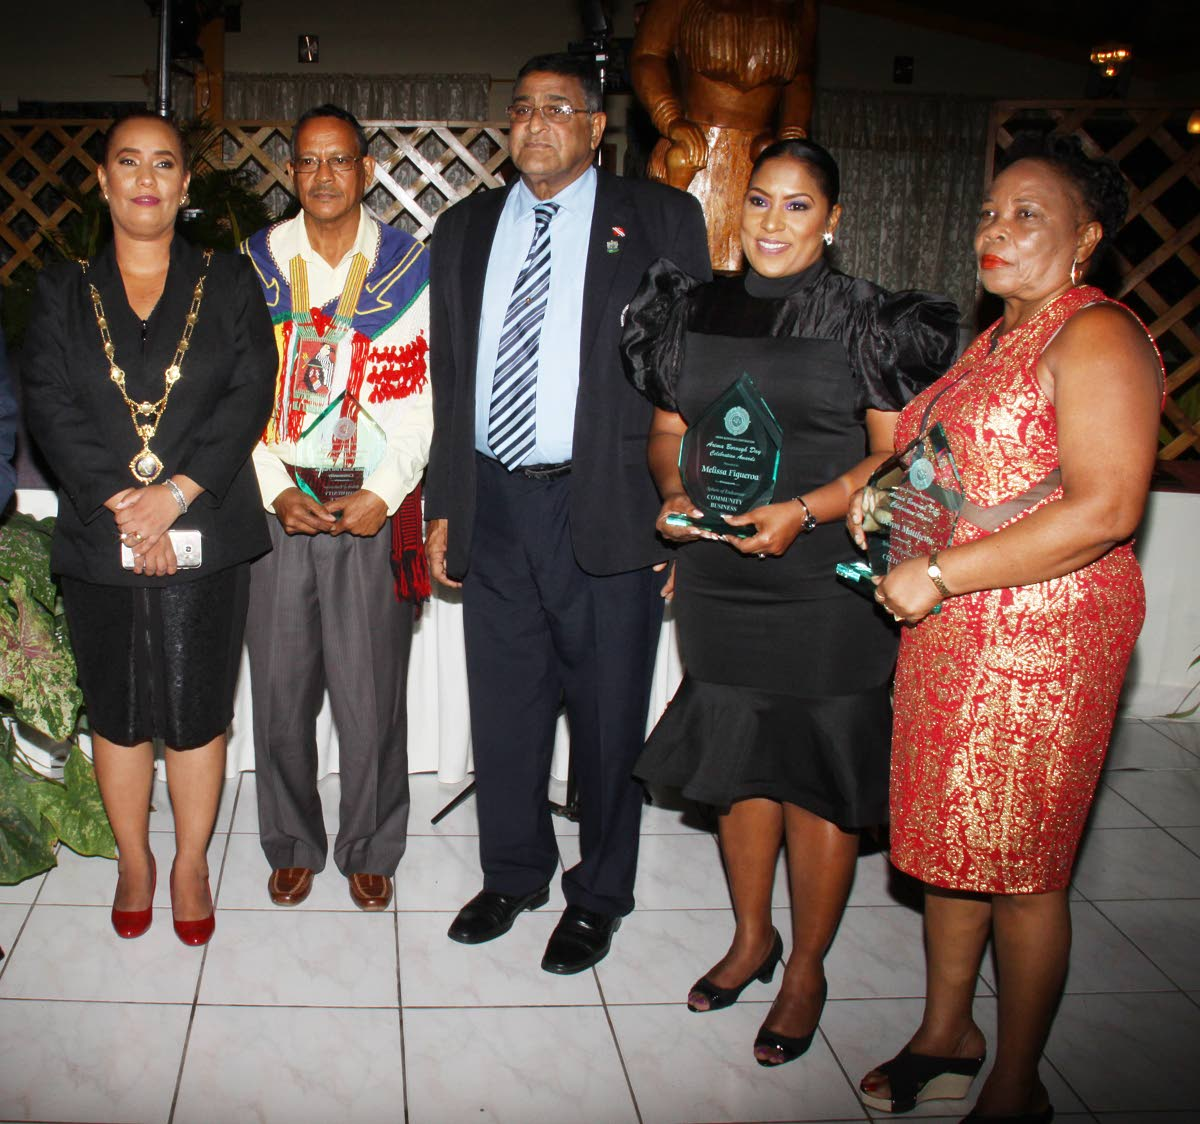 AWARDS TIME: From left, Arima Mayor Lisa Morris-Julien, Carib Chief Ricardo Bharath-Hernandez, Sangre Grande Regional Corporation Chairman Terry Rondon, Melissa Figueroa and Gloria Matthews at the Arima Civic Awards ceremony last week Wednesday.